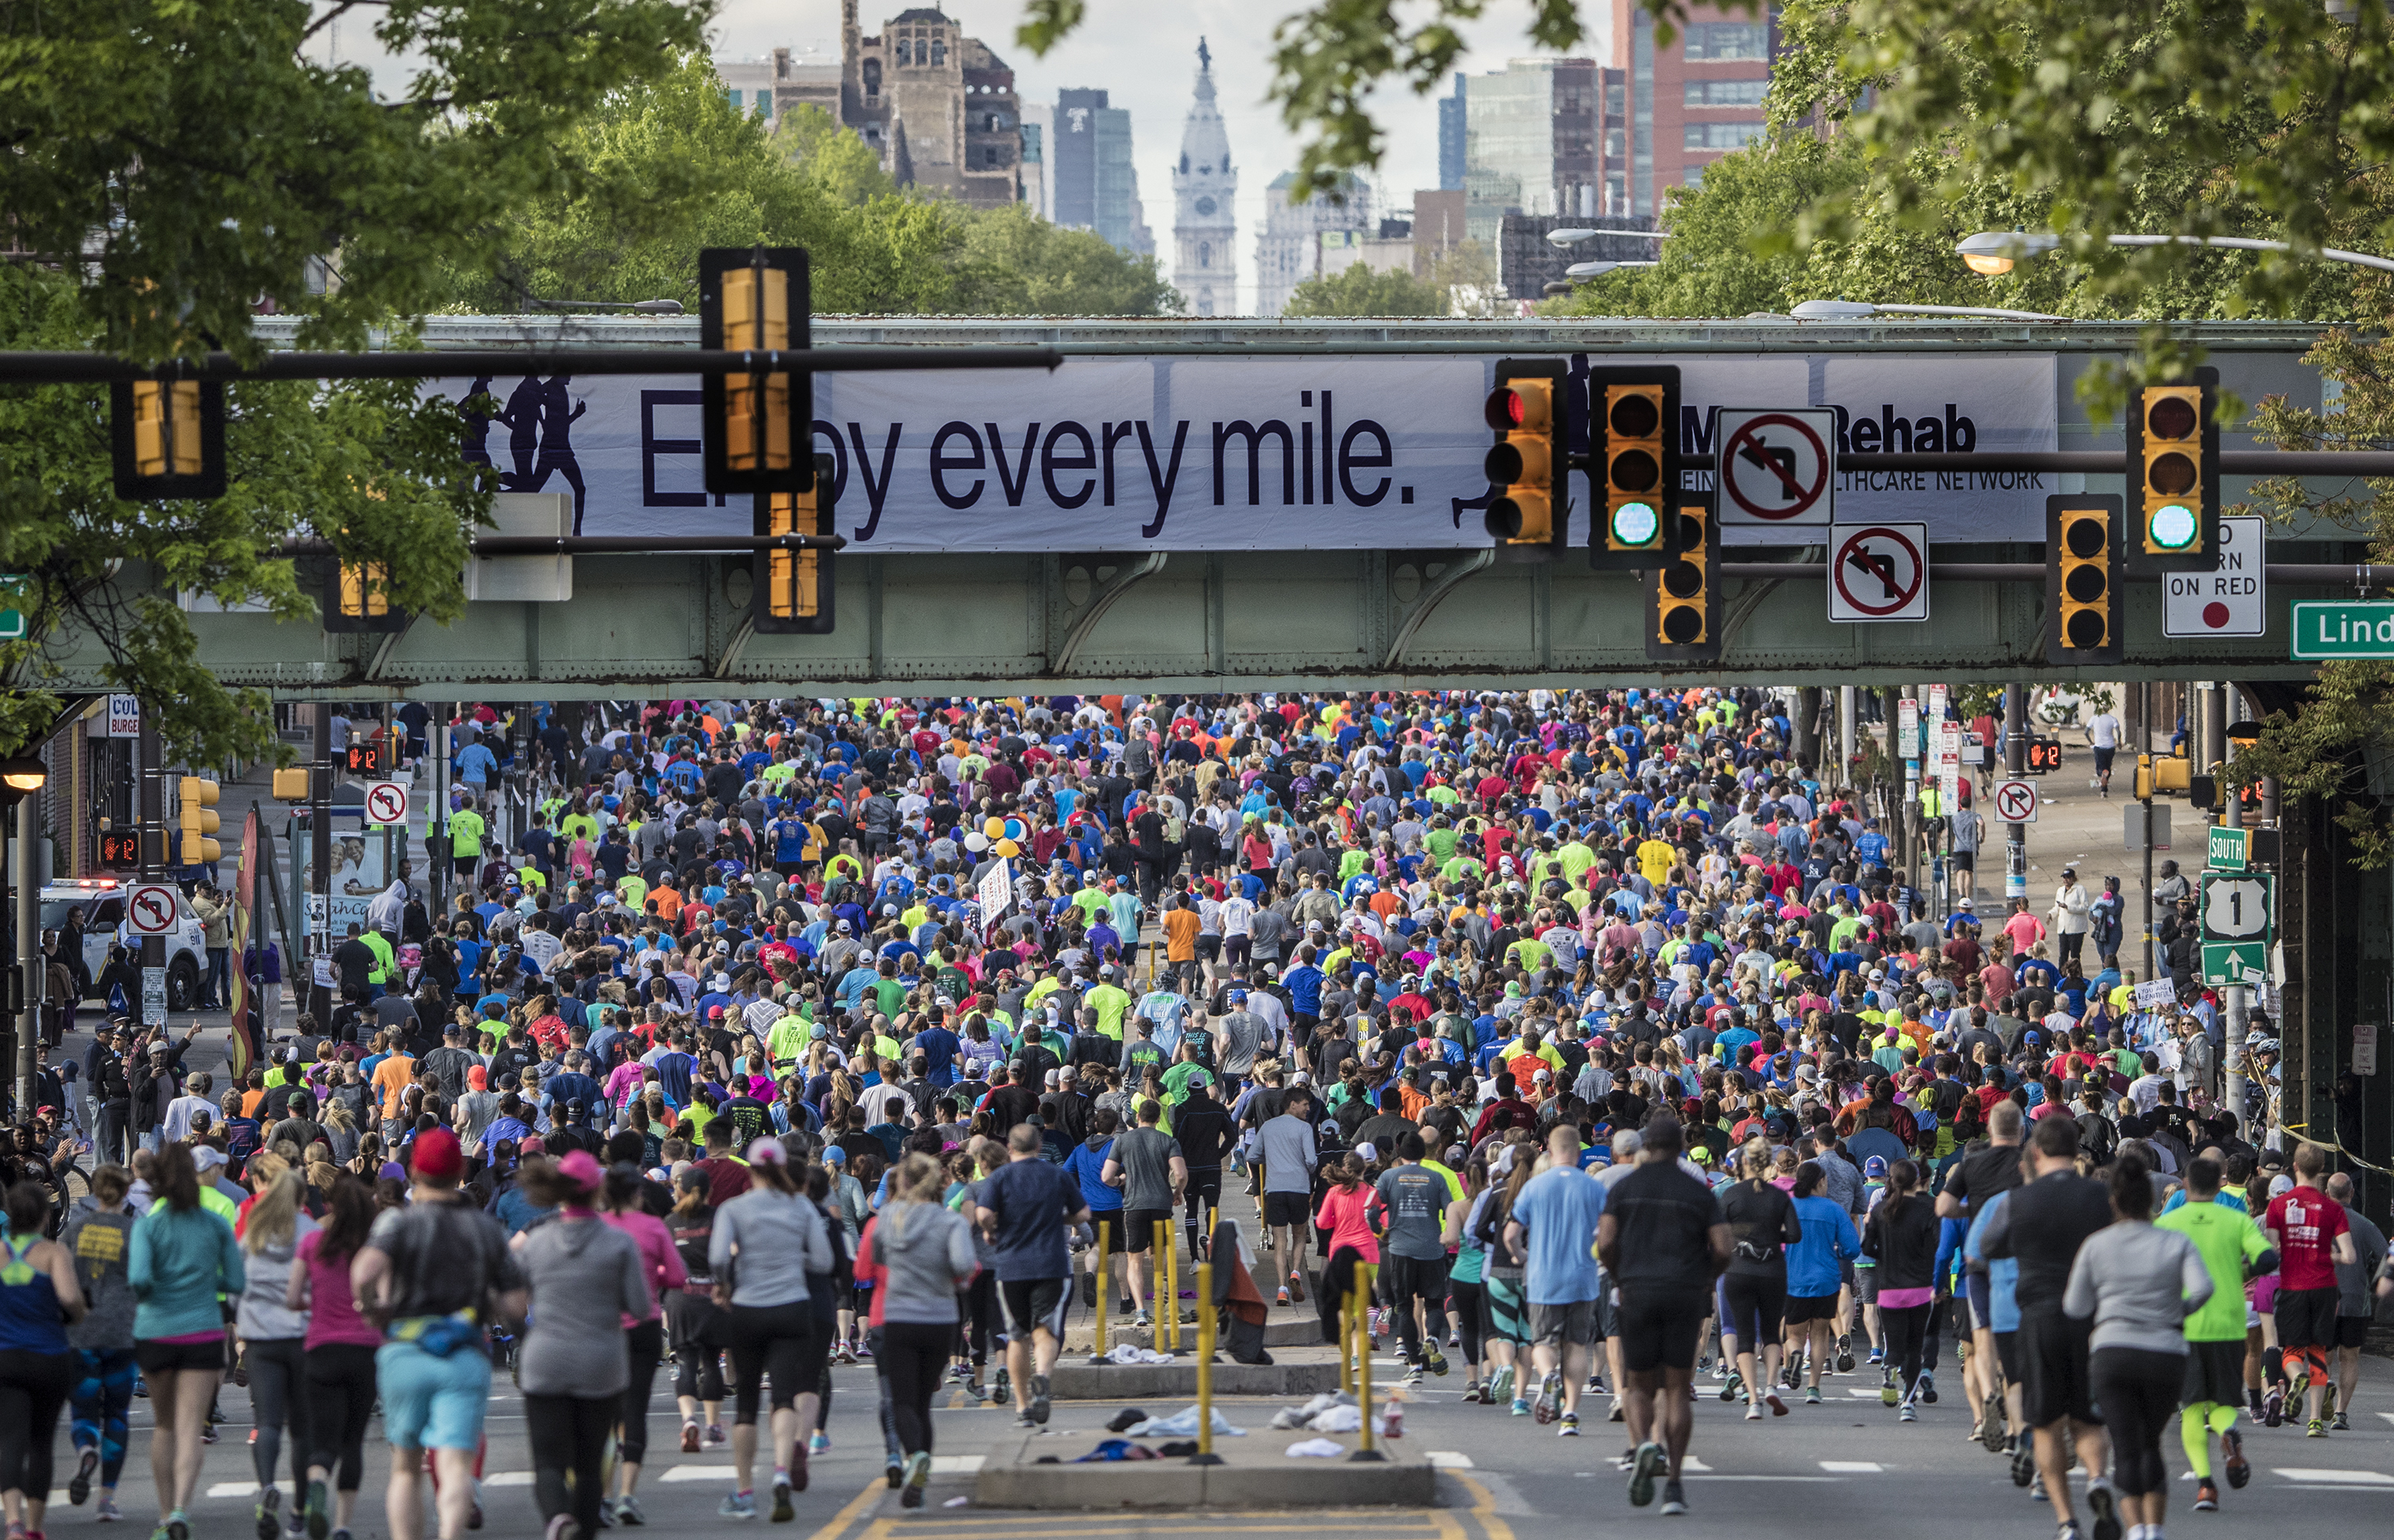 A mass of runners make their way toward City Hall, in the background, as they begin the Broad Street Run and run under a roialroad trestle bridge on their way to the Navy Yard in South Philadelphia. The Broad Street Run starting line is at Broad Street and W. Fisher Avenue. The race ends approximately one-quarter mile inside the main gate of the Philadelphia Navy Yard, at the southern end of Broad Street.